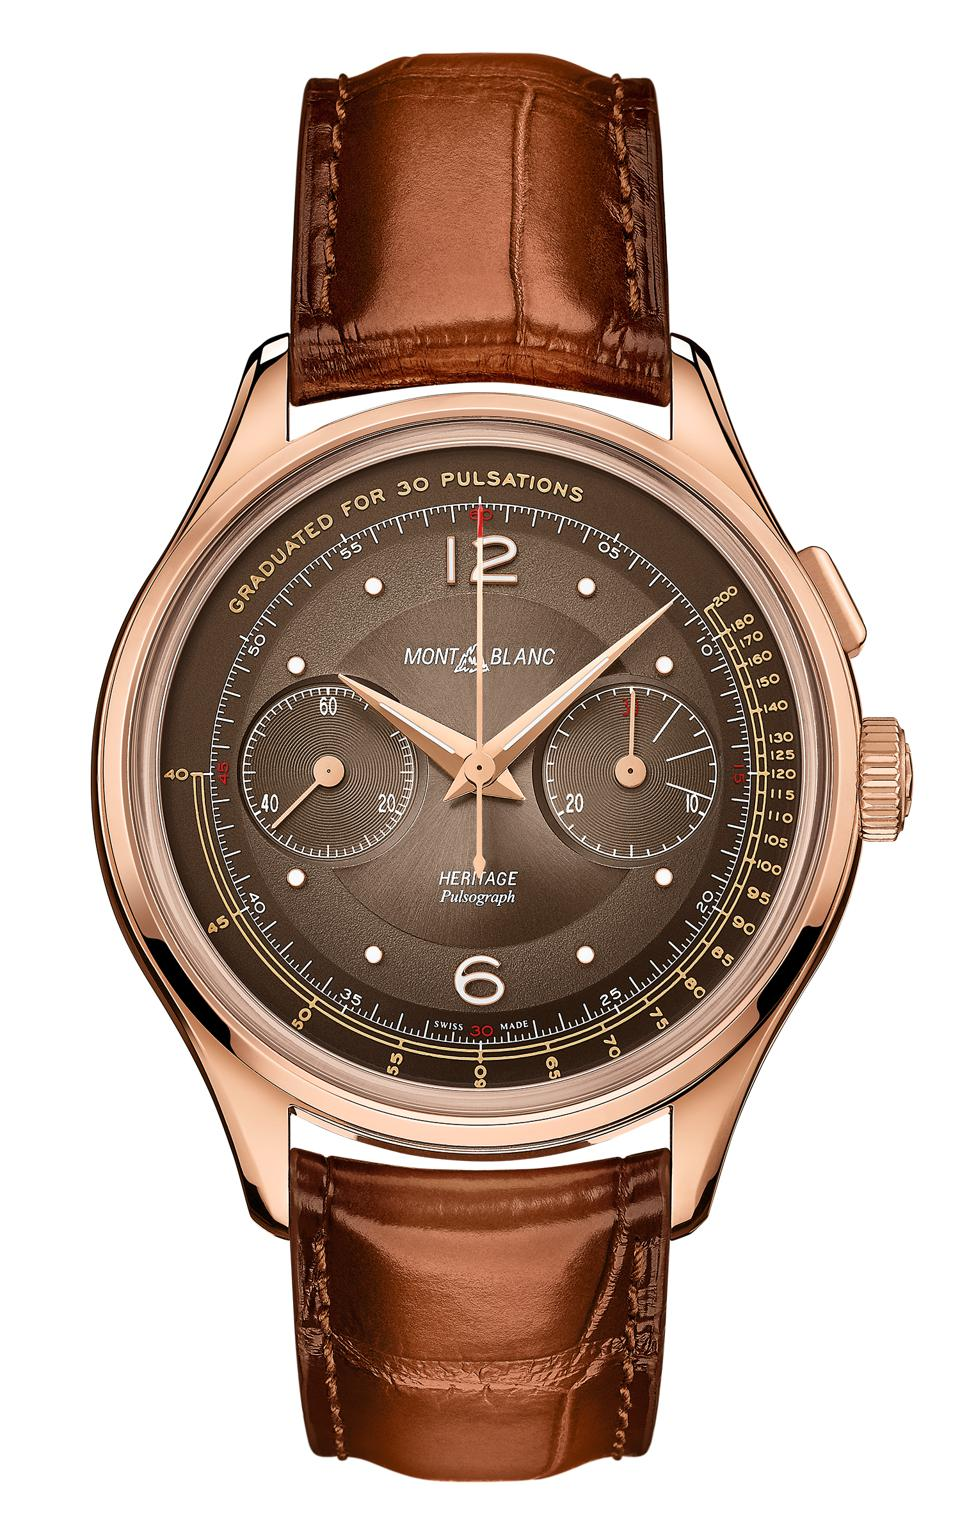 Montblanc Heritage Manufacture Pulsograph Limited Edition watch, 2020